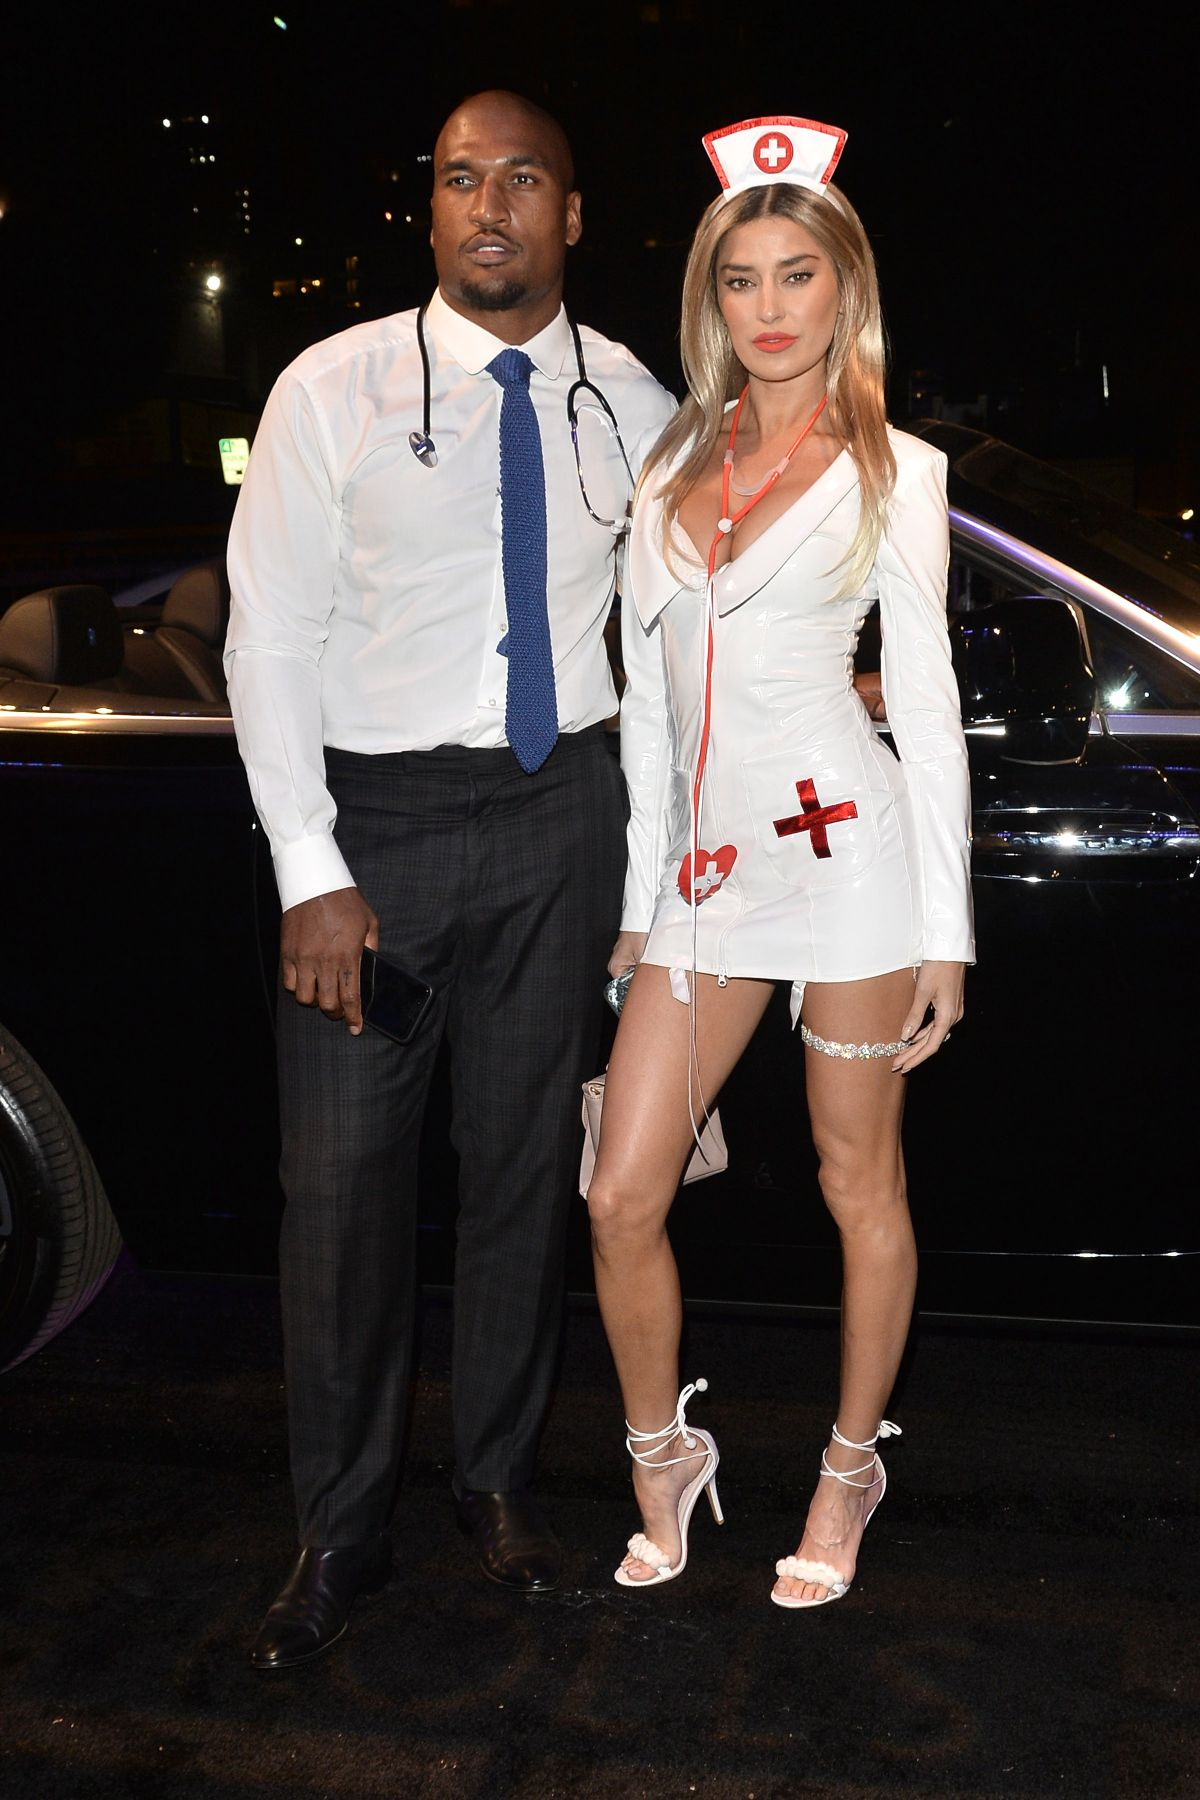 Nicole Williams and Larry English Arrive to Treats Magazine Halloween Party in LA